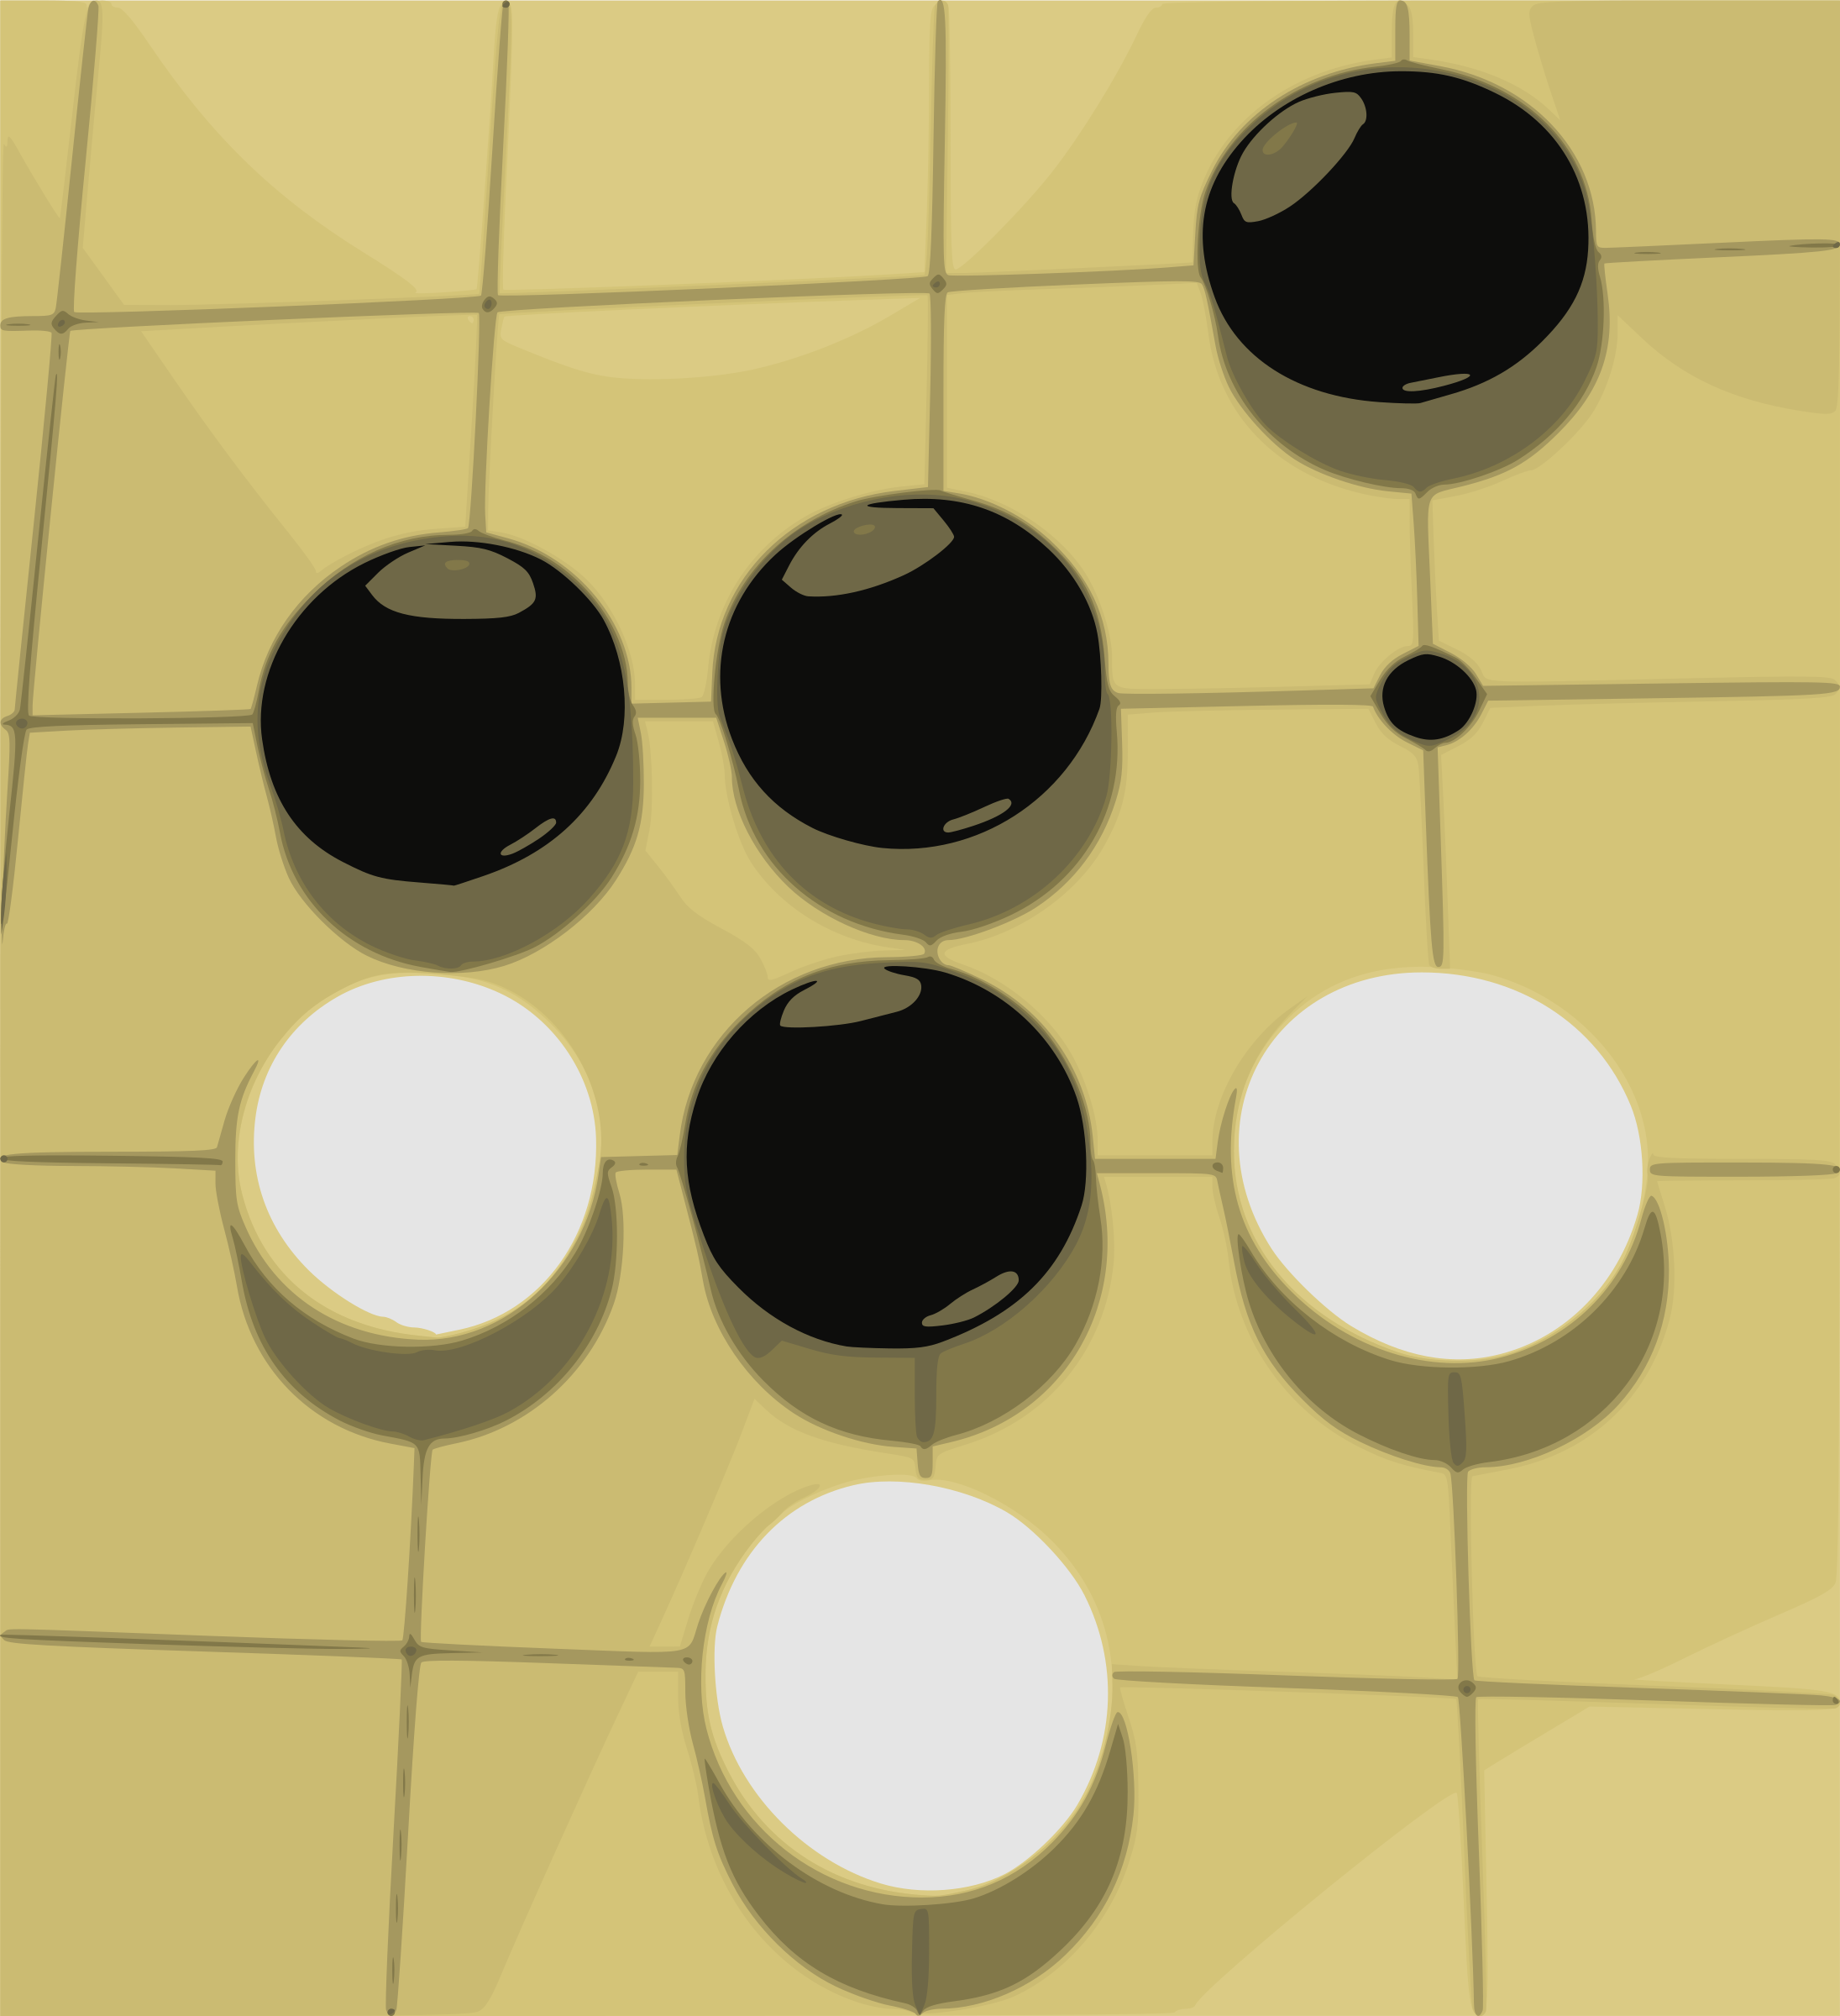 Game of Go by mazeo